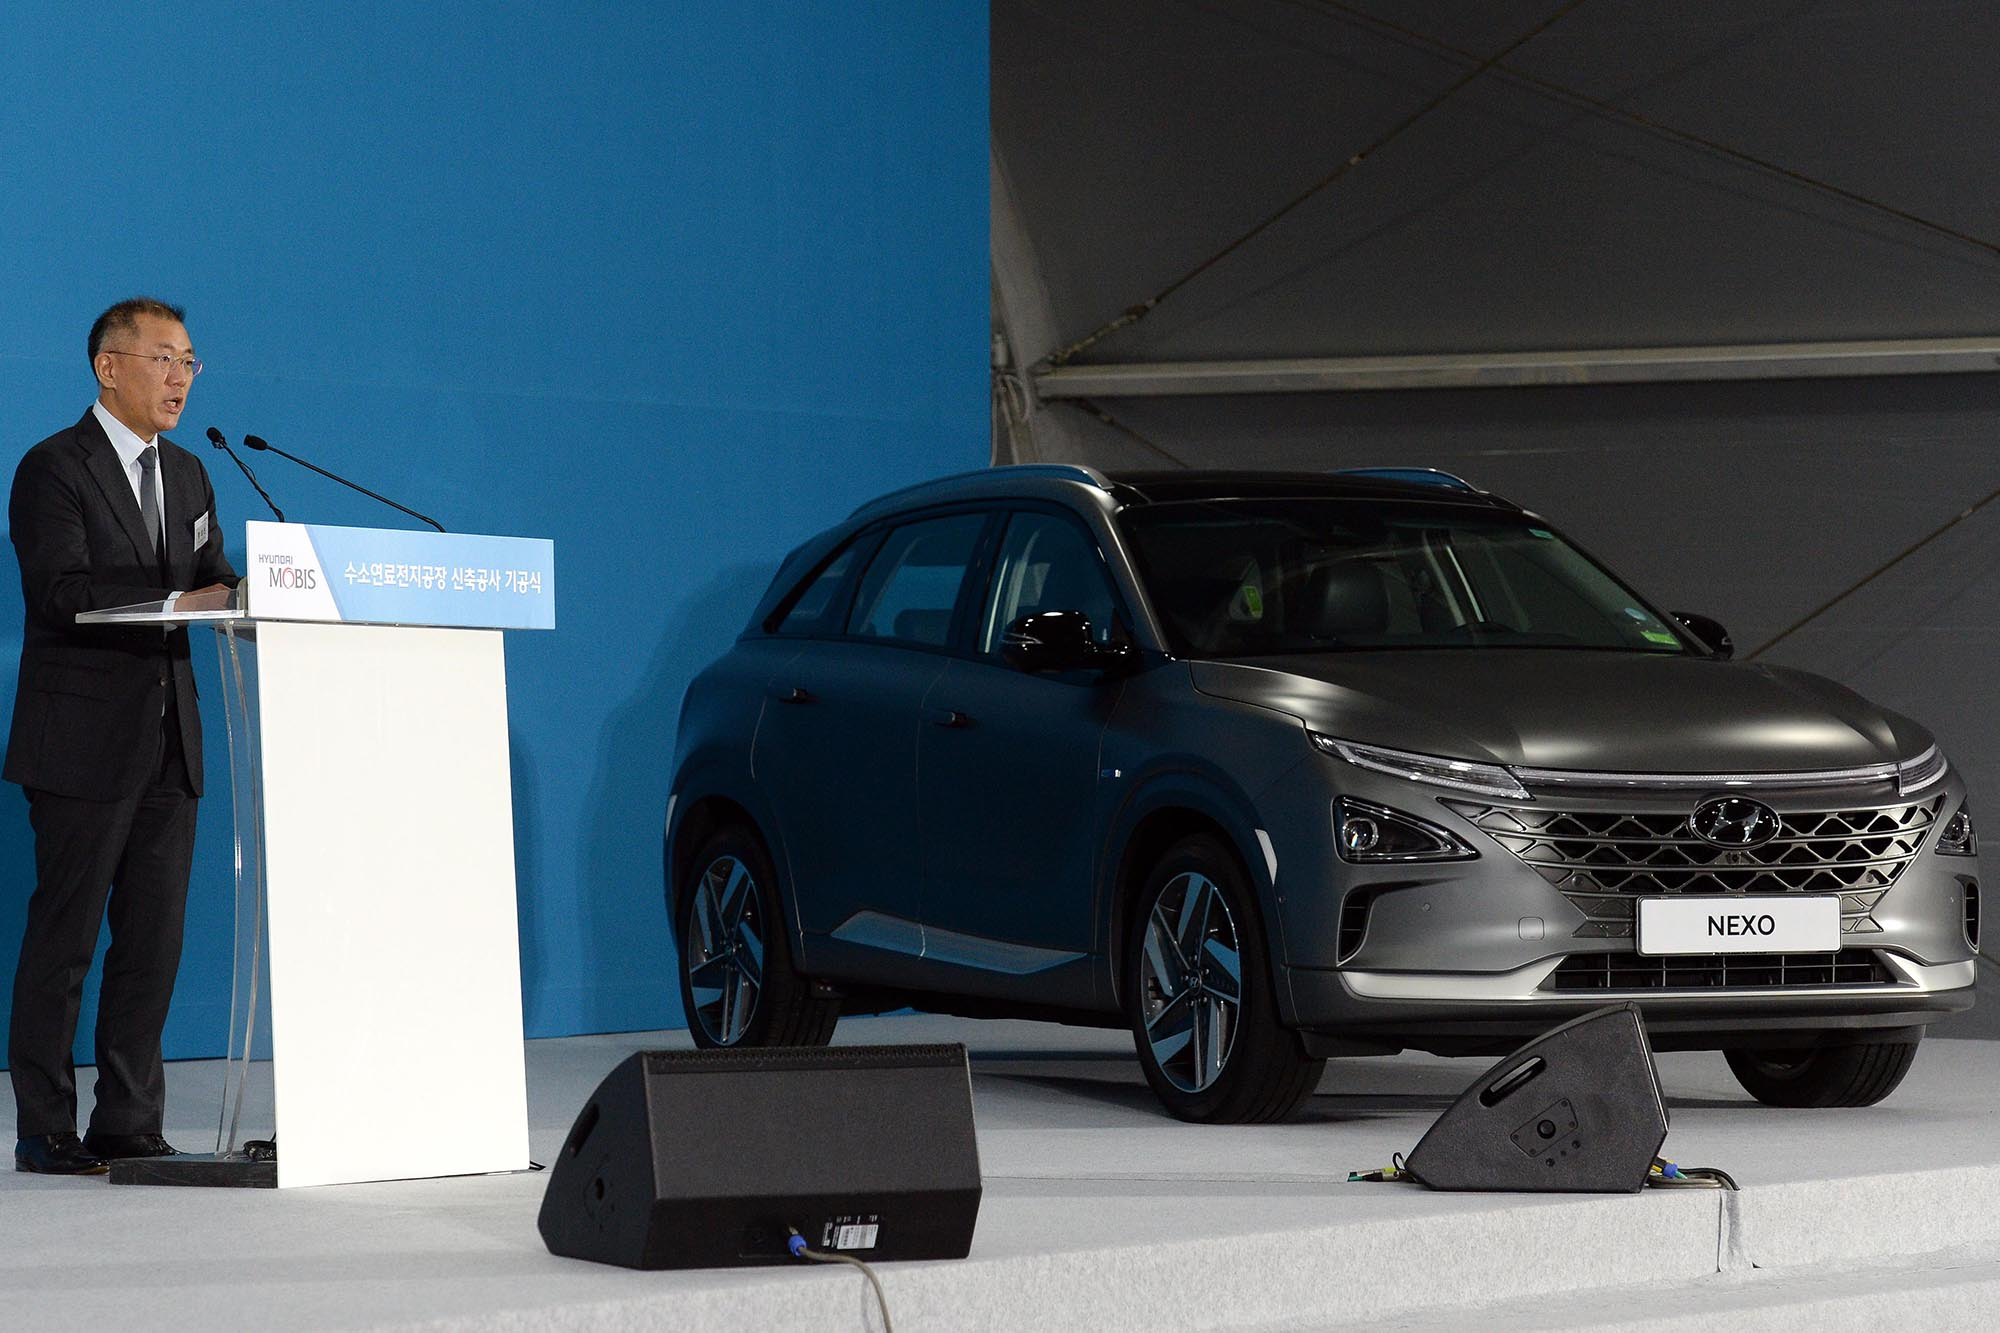 Hyundai al World Economic Forum chiede cooperazione per l'idrogeno